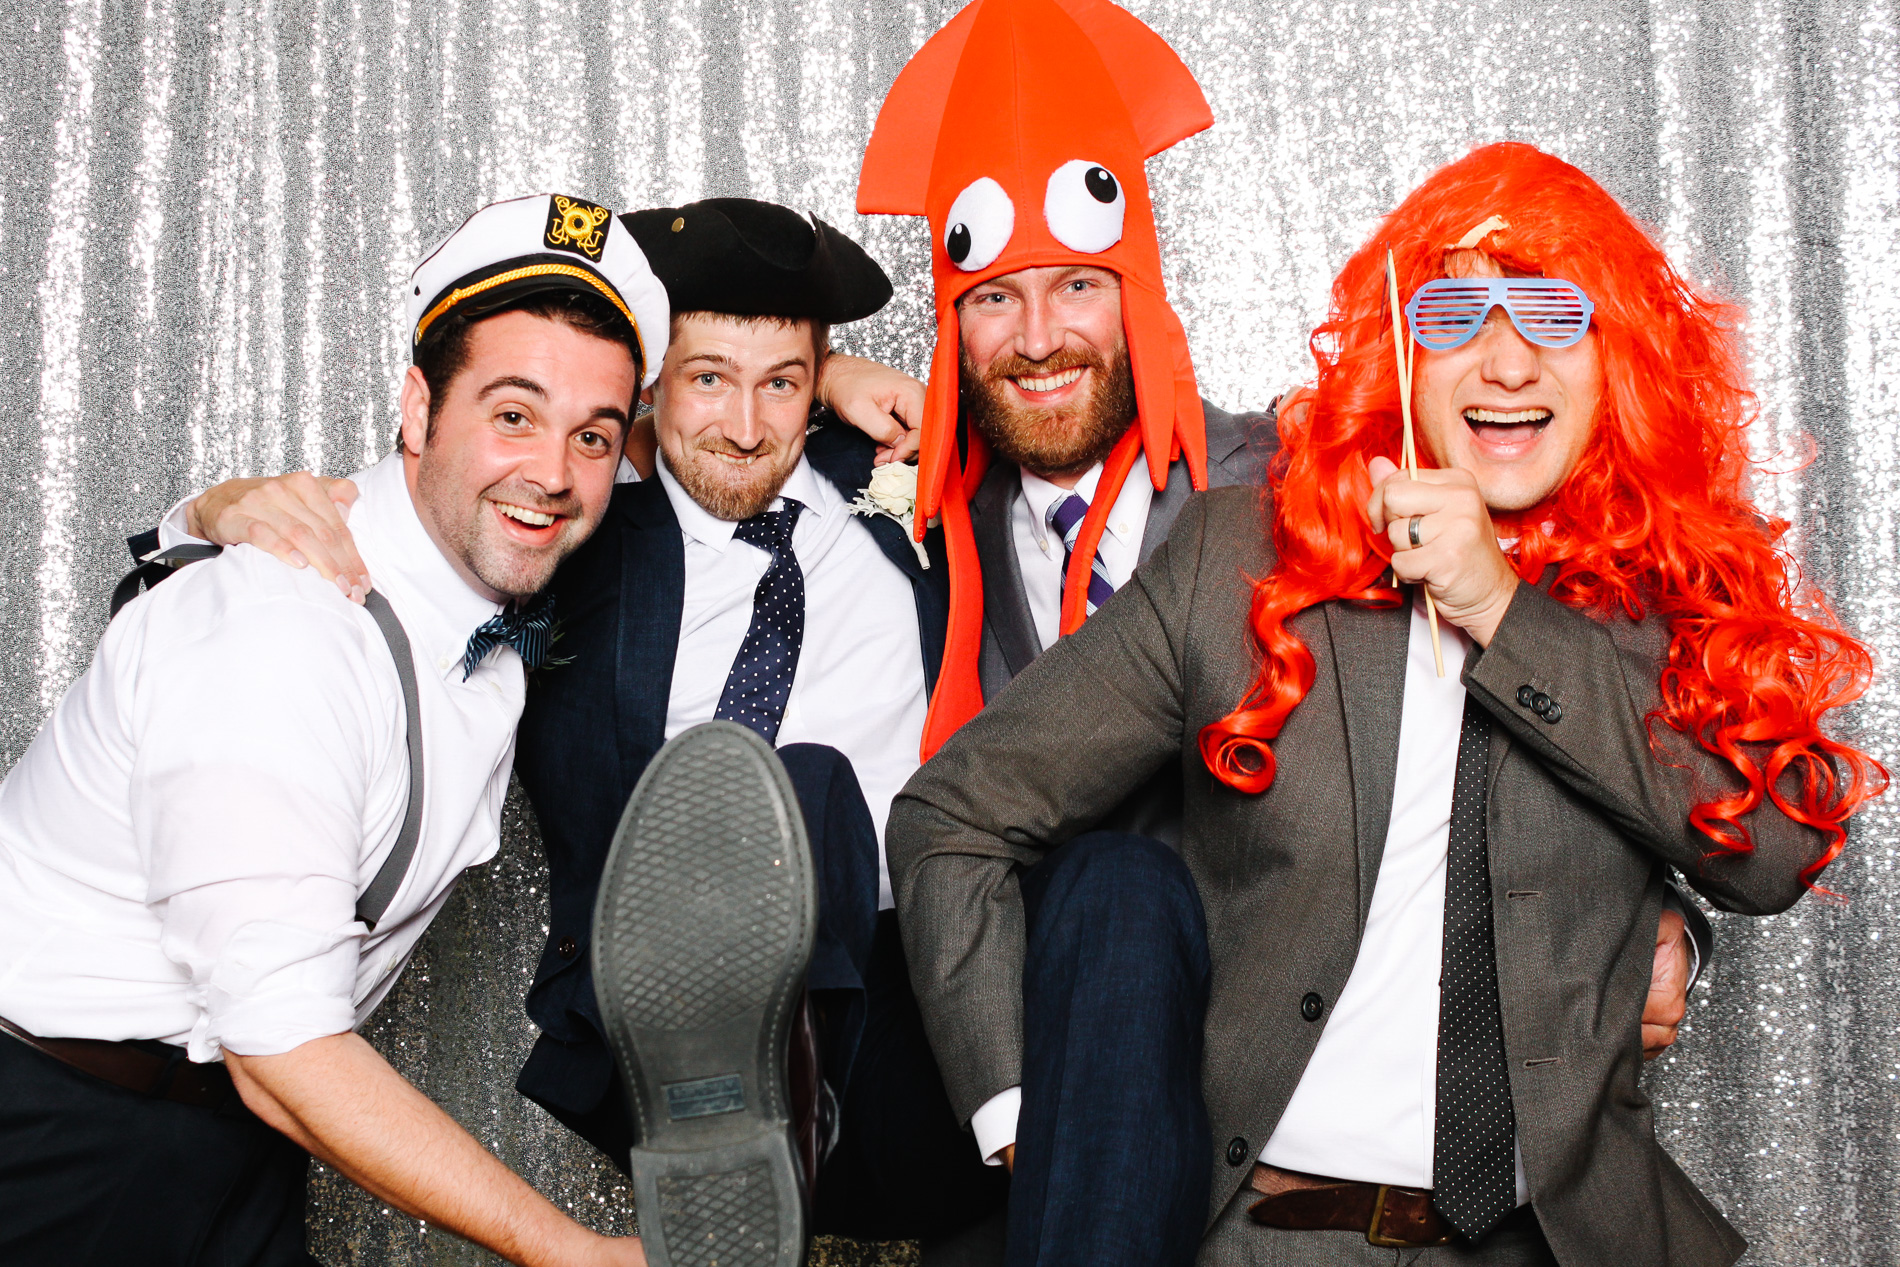 grin-and-bear-booth-photobooth-184233.jpg